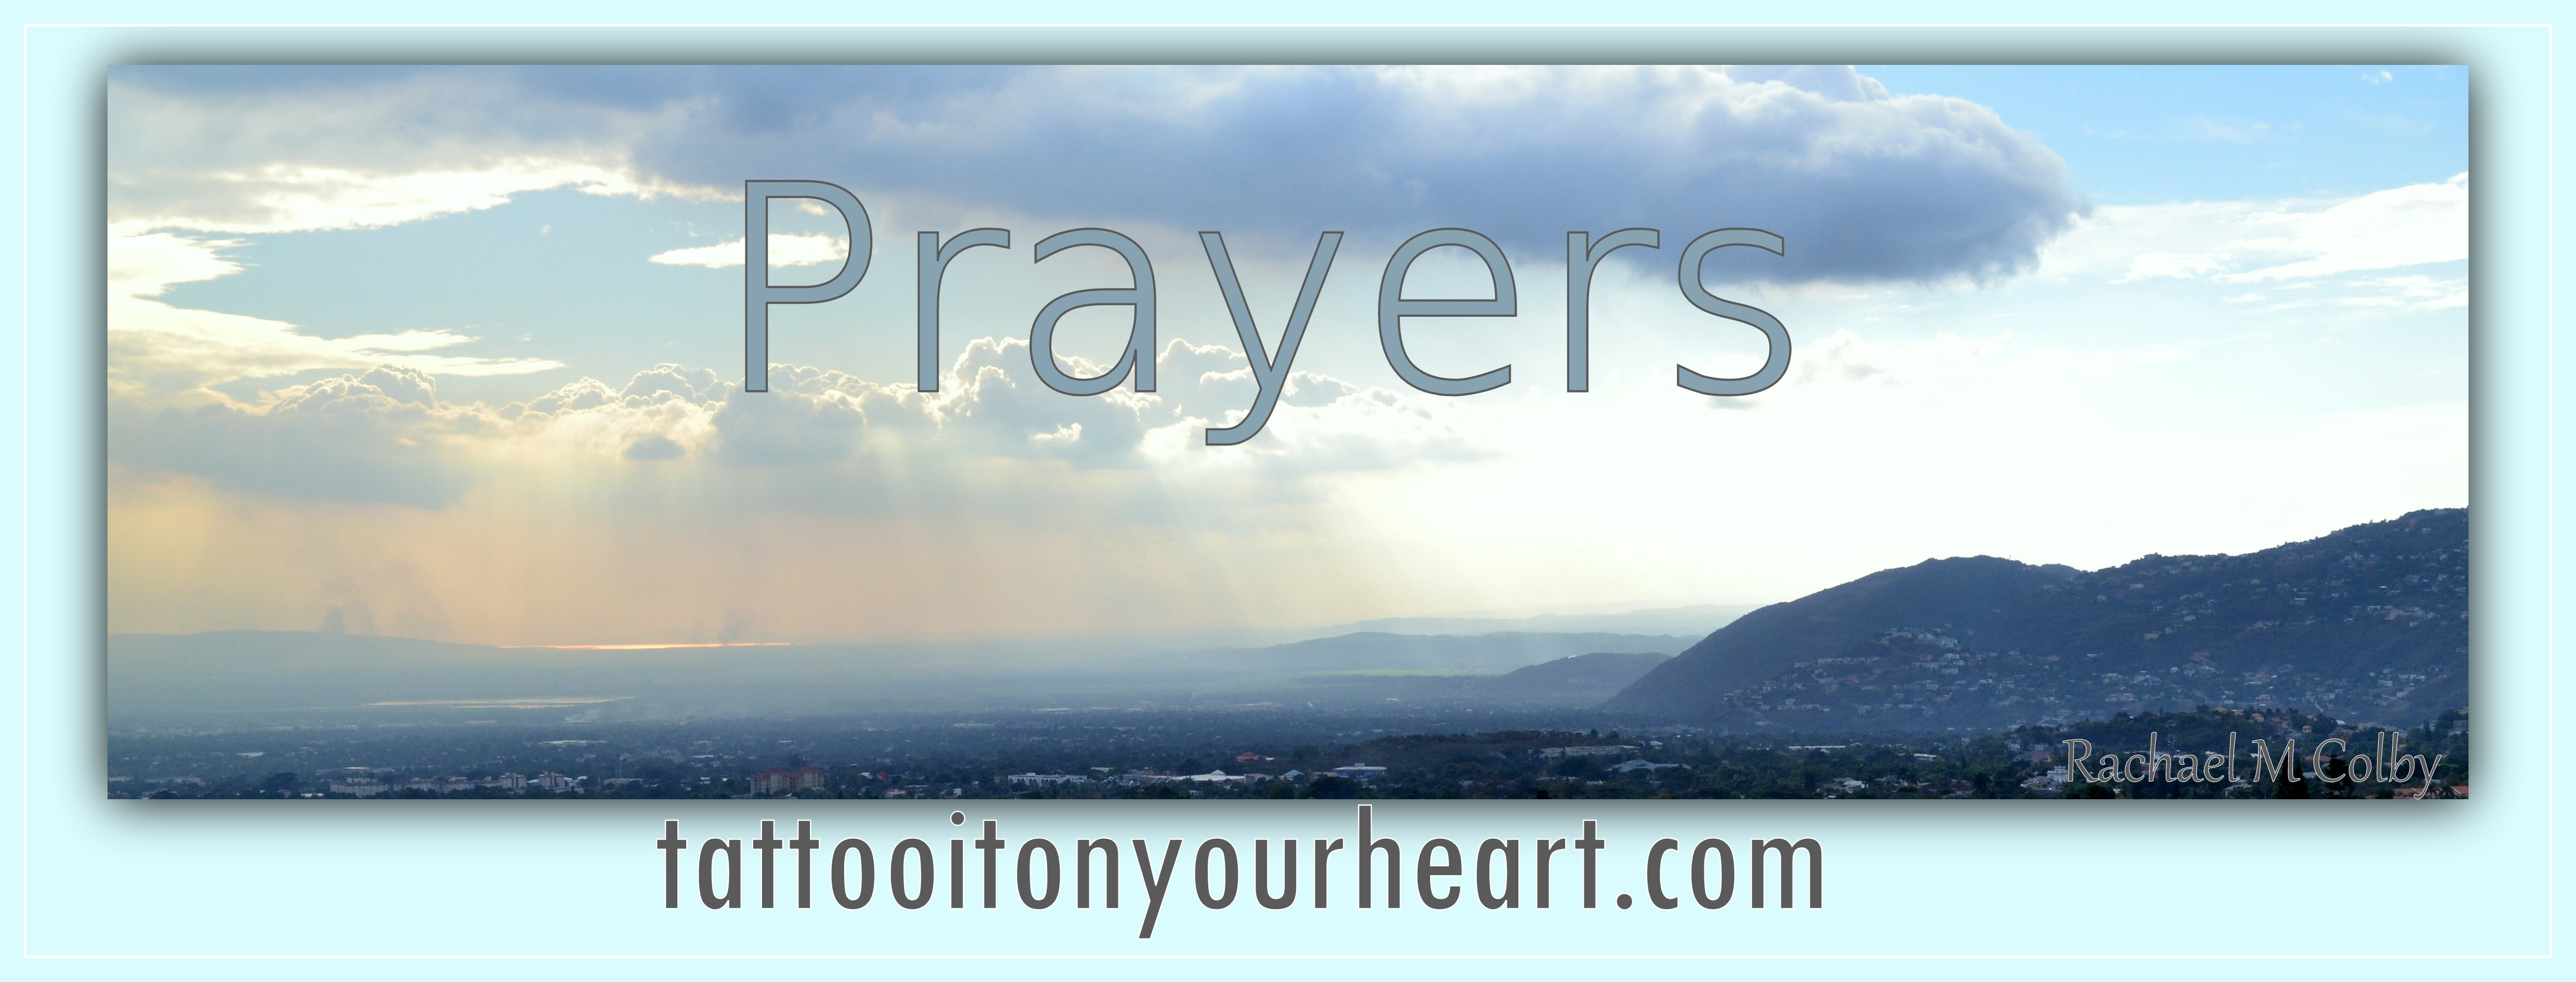 Tattoo_It_On_Your_Heart_Rachael-M_Colby_Prayers